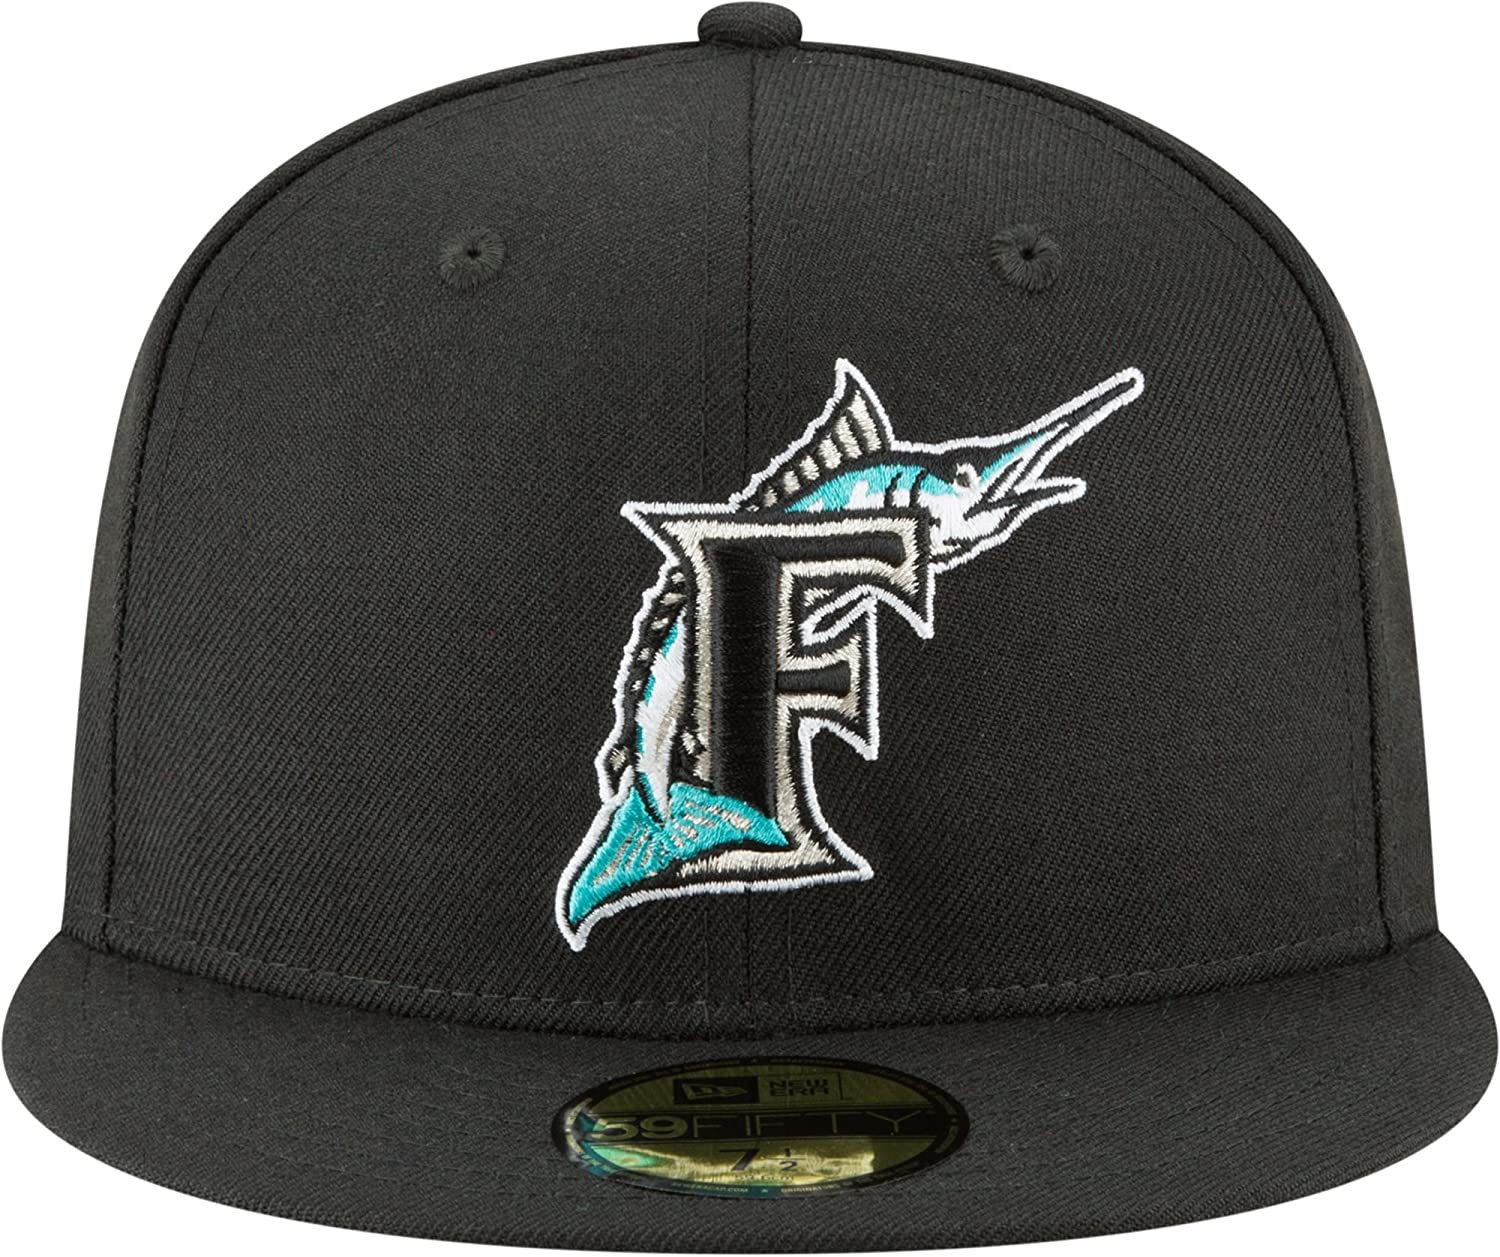 newest 61c59 fe074 Amazon.com  New Era 59Fifty Hat Florida Marlins Cooperstown 1993 Wool Black  Fitted Headwear Cap (7 5 8)  Clothing